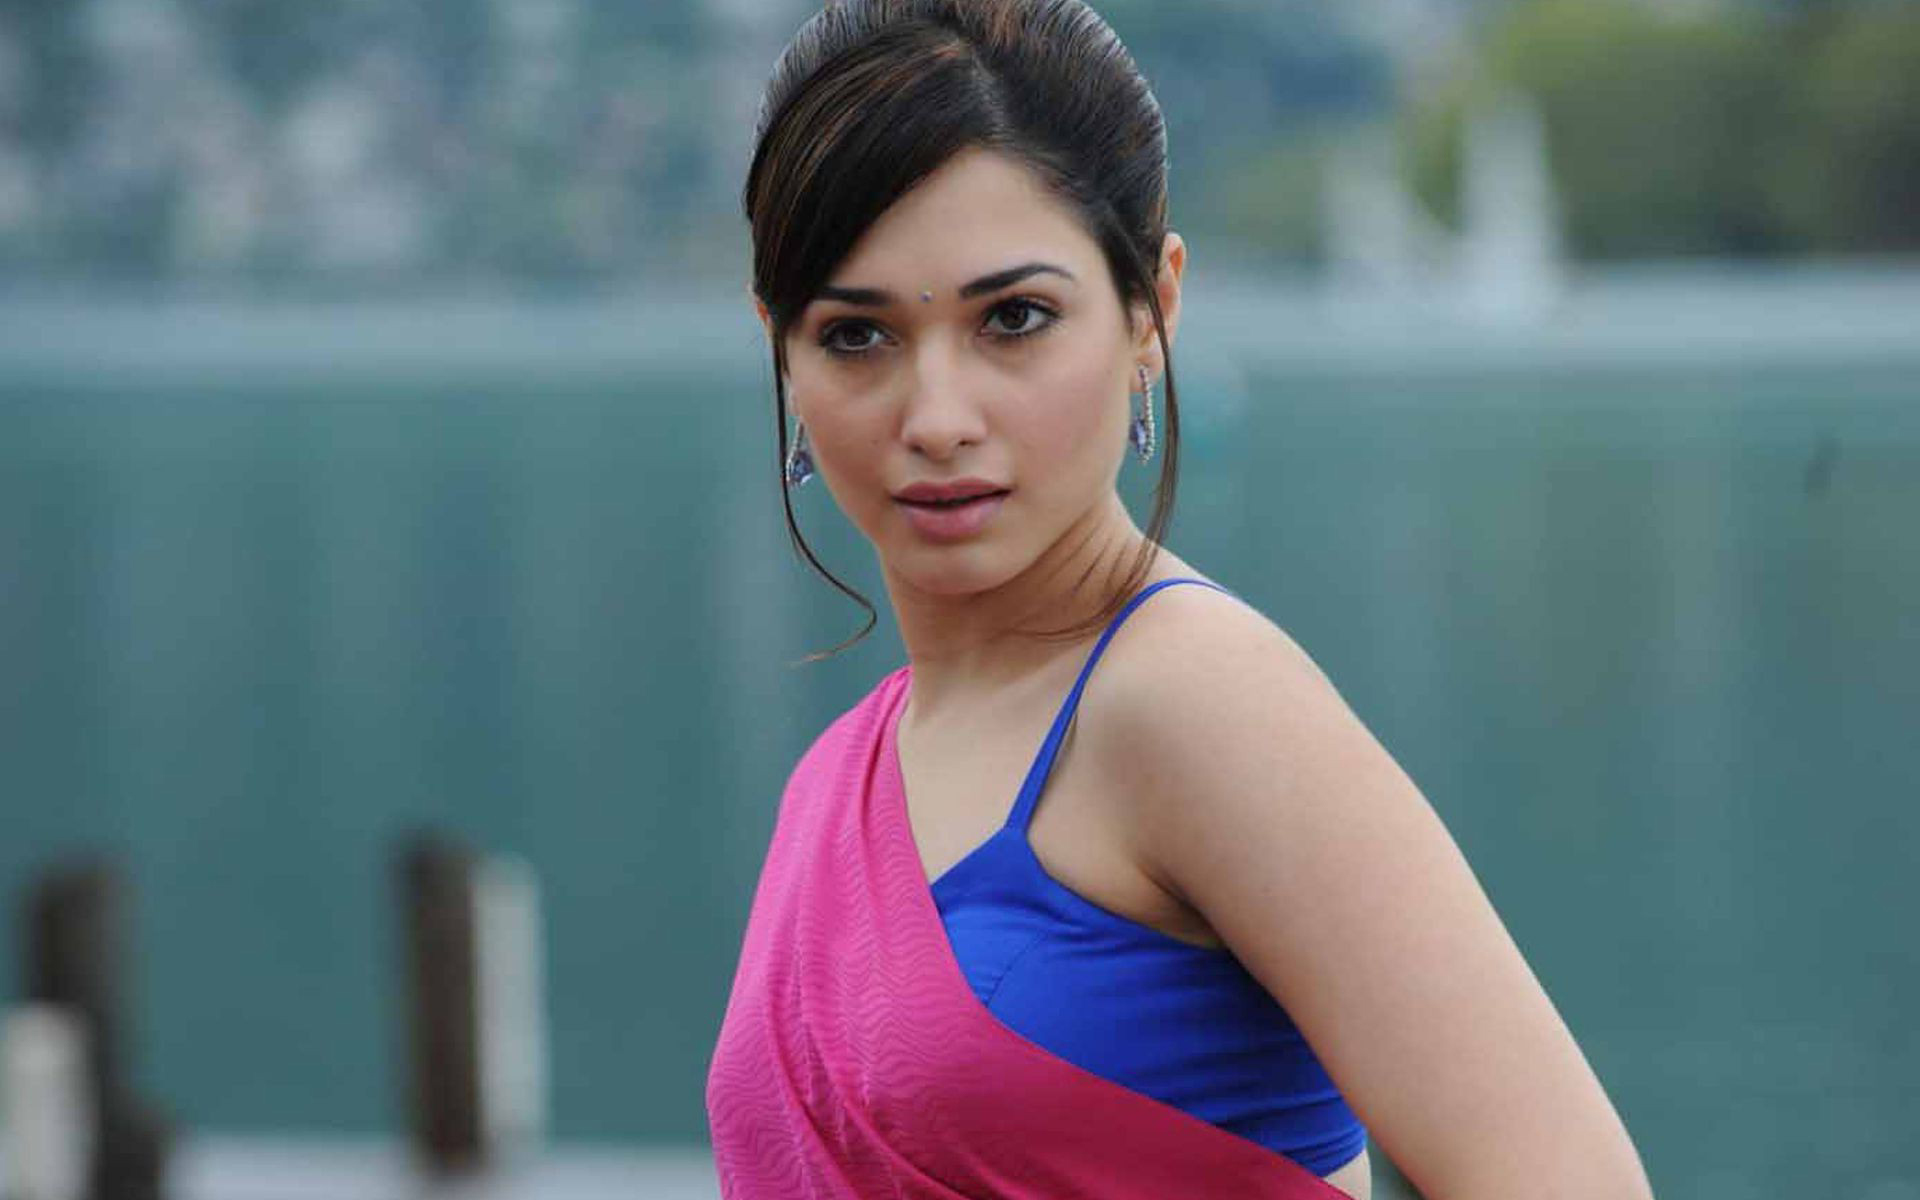 Tamanna Wallpapers Hd Cute: Tamanna Bhatia Wallpapers Images Photos Pictures Backgrounds